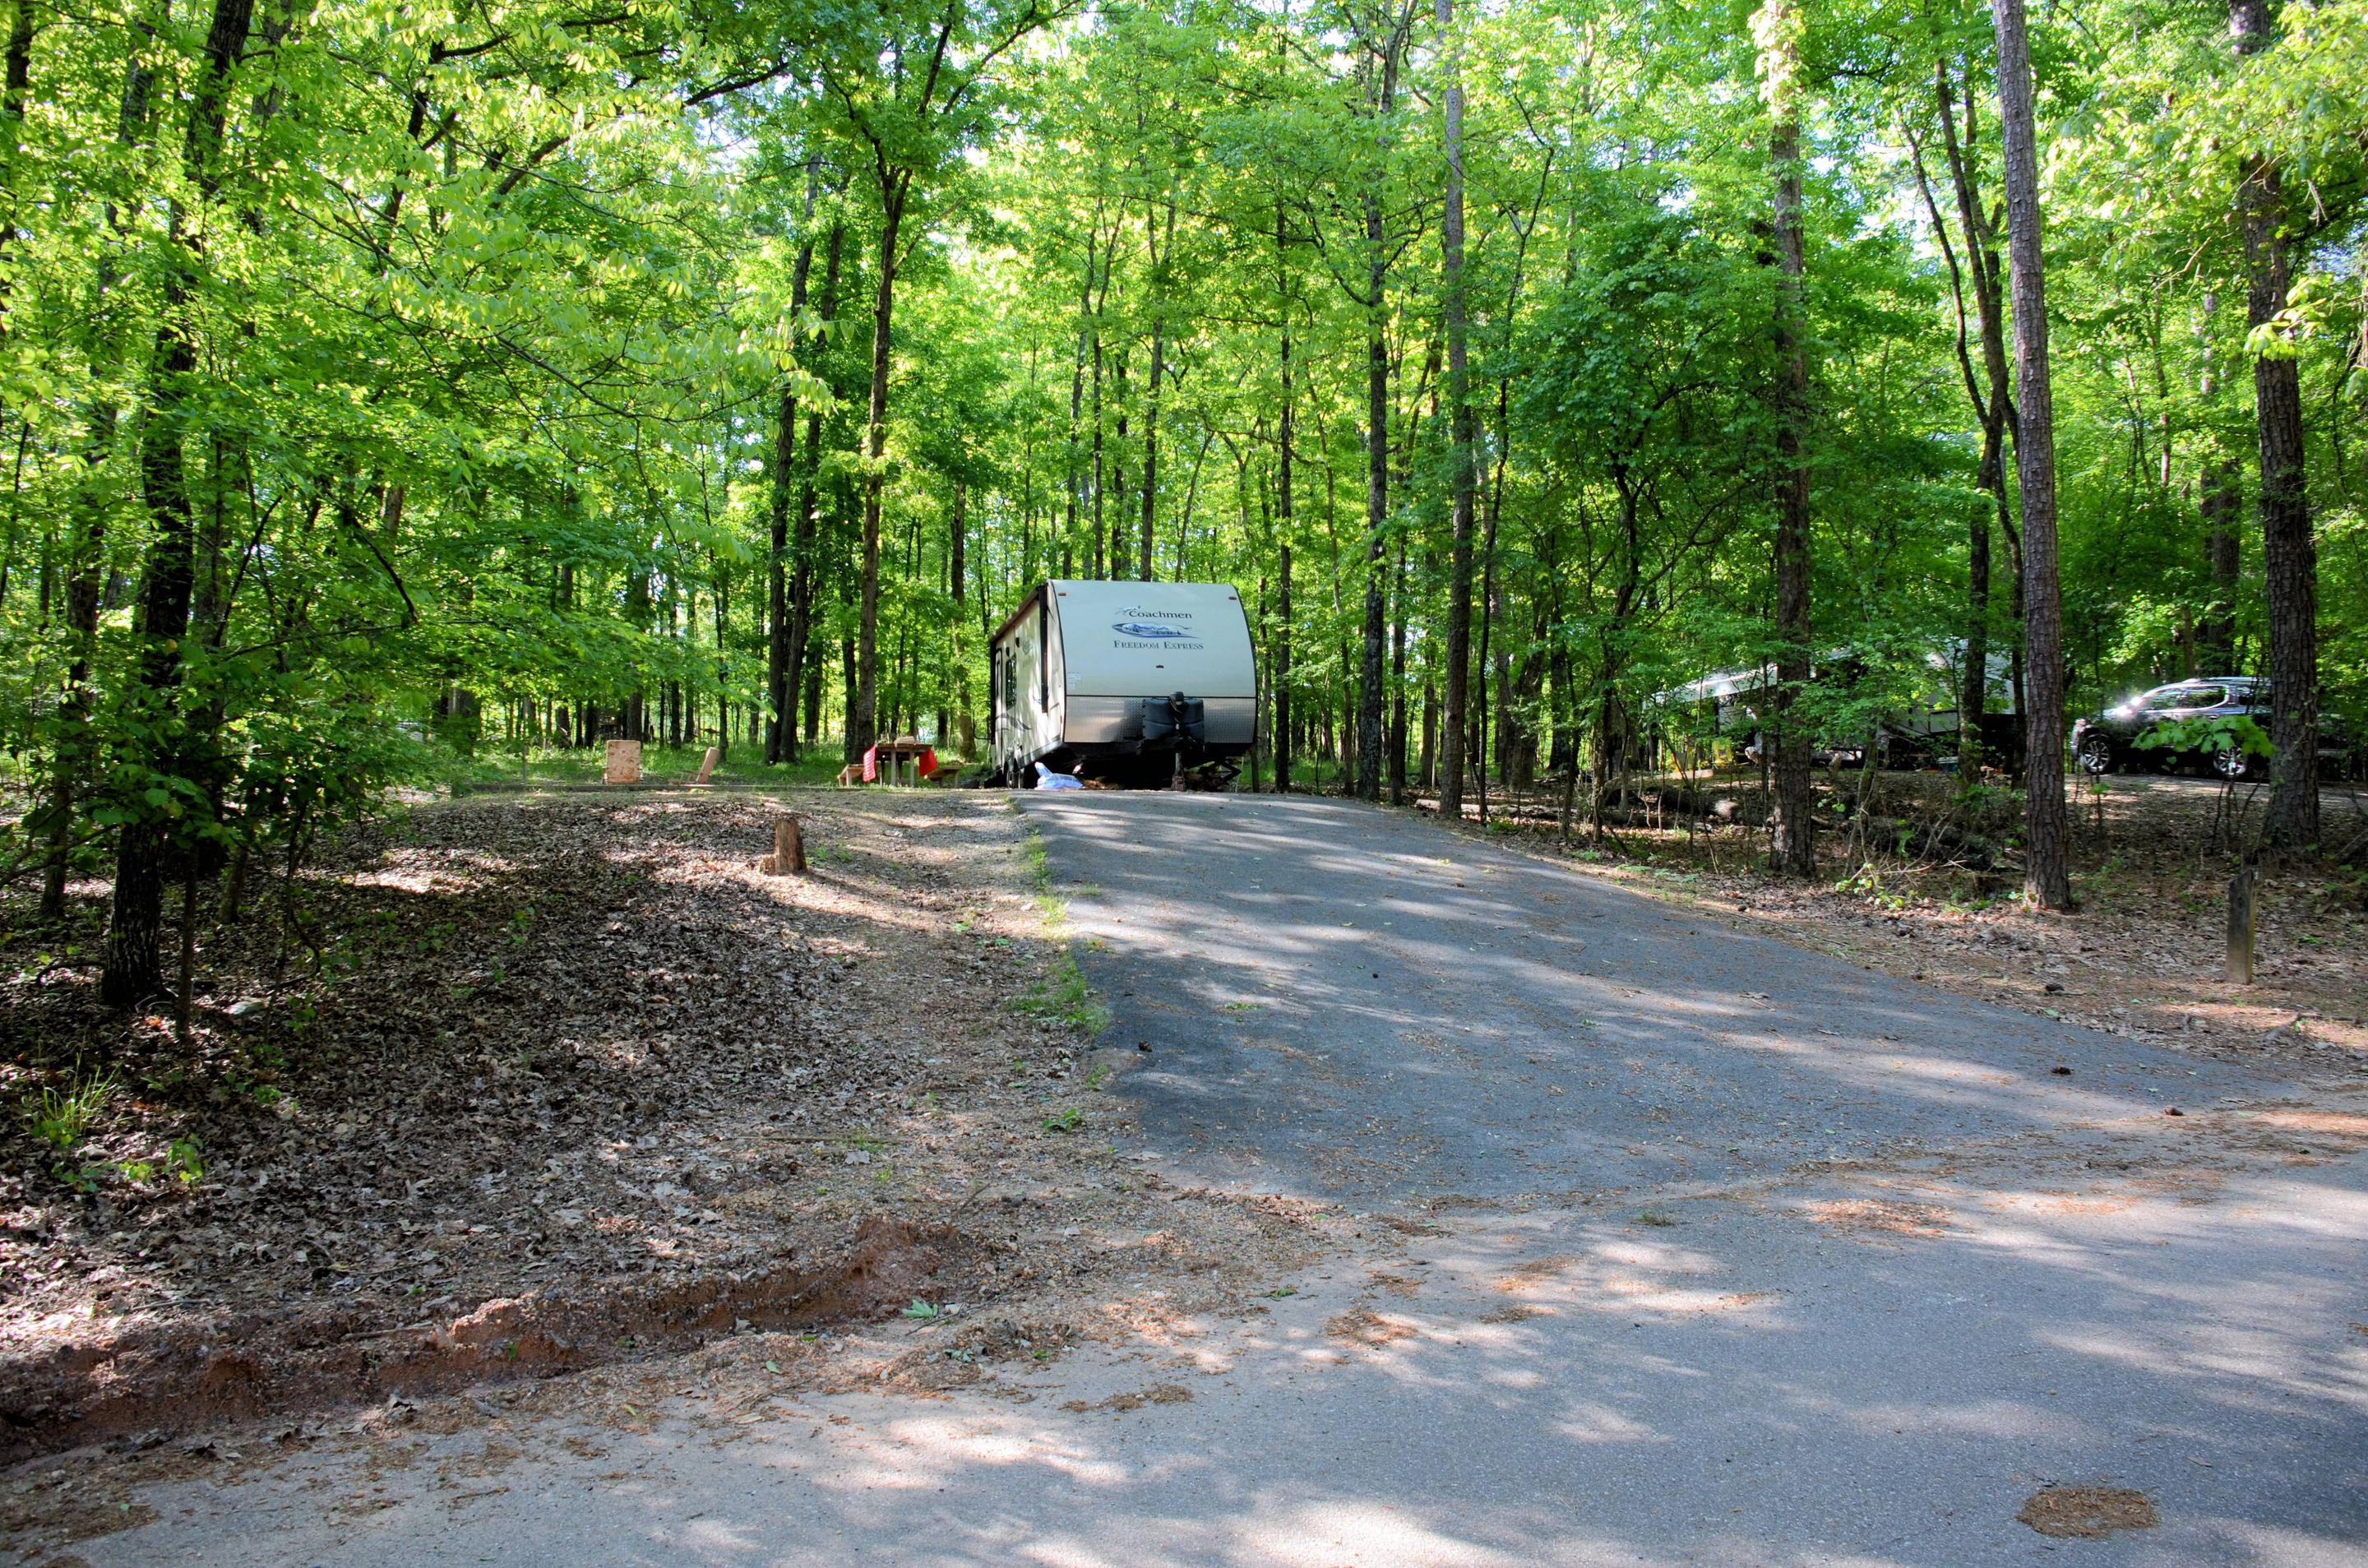 Entrance angle, driveway slope, awning clearance.McKinney Campground, Campsite #3.